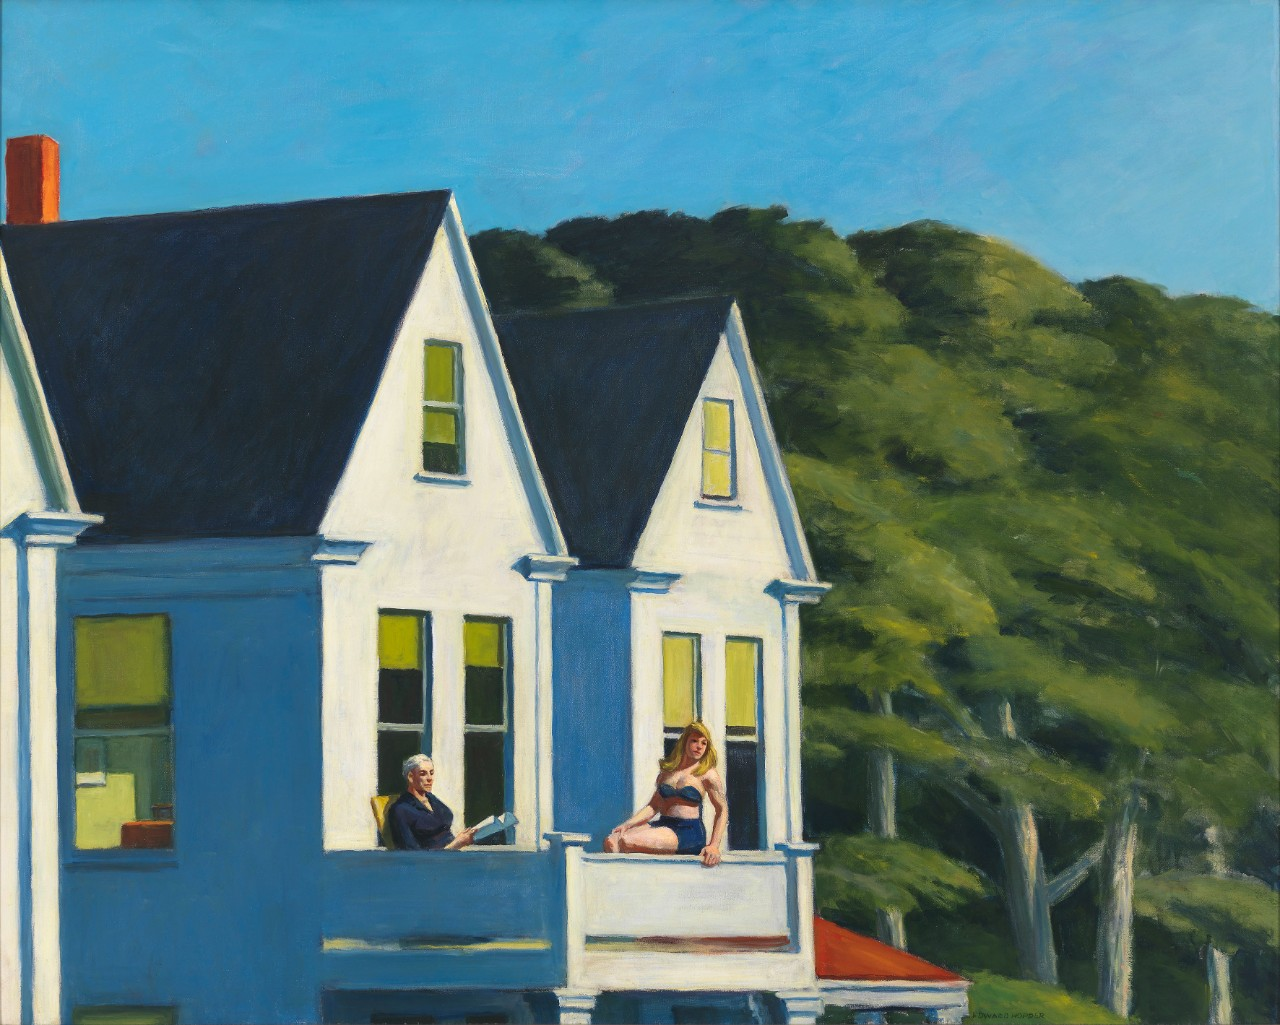 Edward Hopper Second Story Sunlight, 1960 Huile sur toile, 102.1 x 127.3 cm Whitney Museum of American Art, New York ; Purchase, with funds from the Friends of the Whitney Museum of American Art © Heirs of Josephine Hopper / 2019, ProLitteris, Zurich Photo : © 2019. Digital image Whitney Museum of American Art / Licensed by Scala